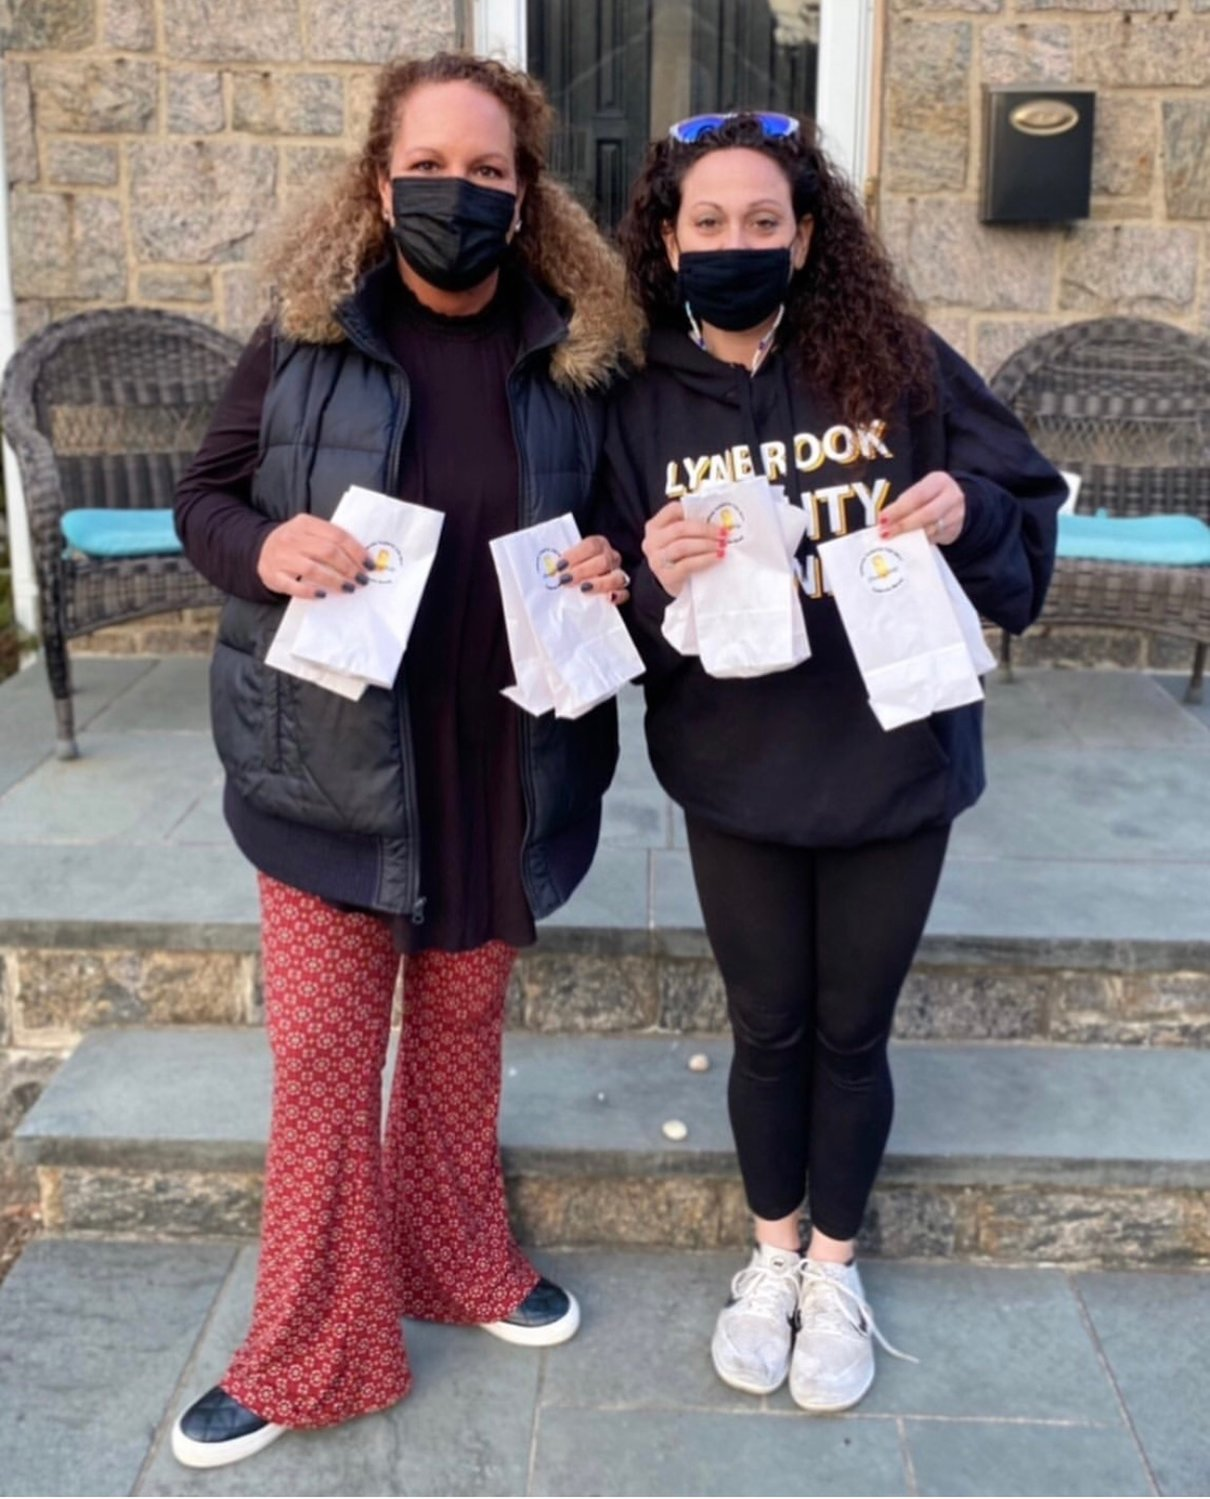 Lynbrook High School Student Government Association adviser Mary Kirby, left, and Waverly Park Student Council adviser Shari Bowes teamed up to ensure the fundraiser was a success.